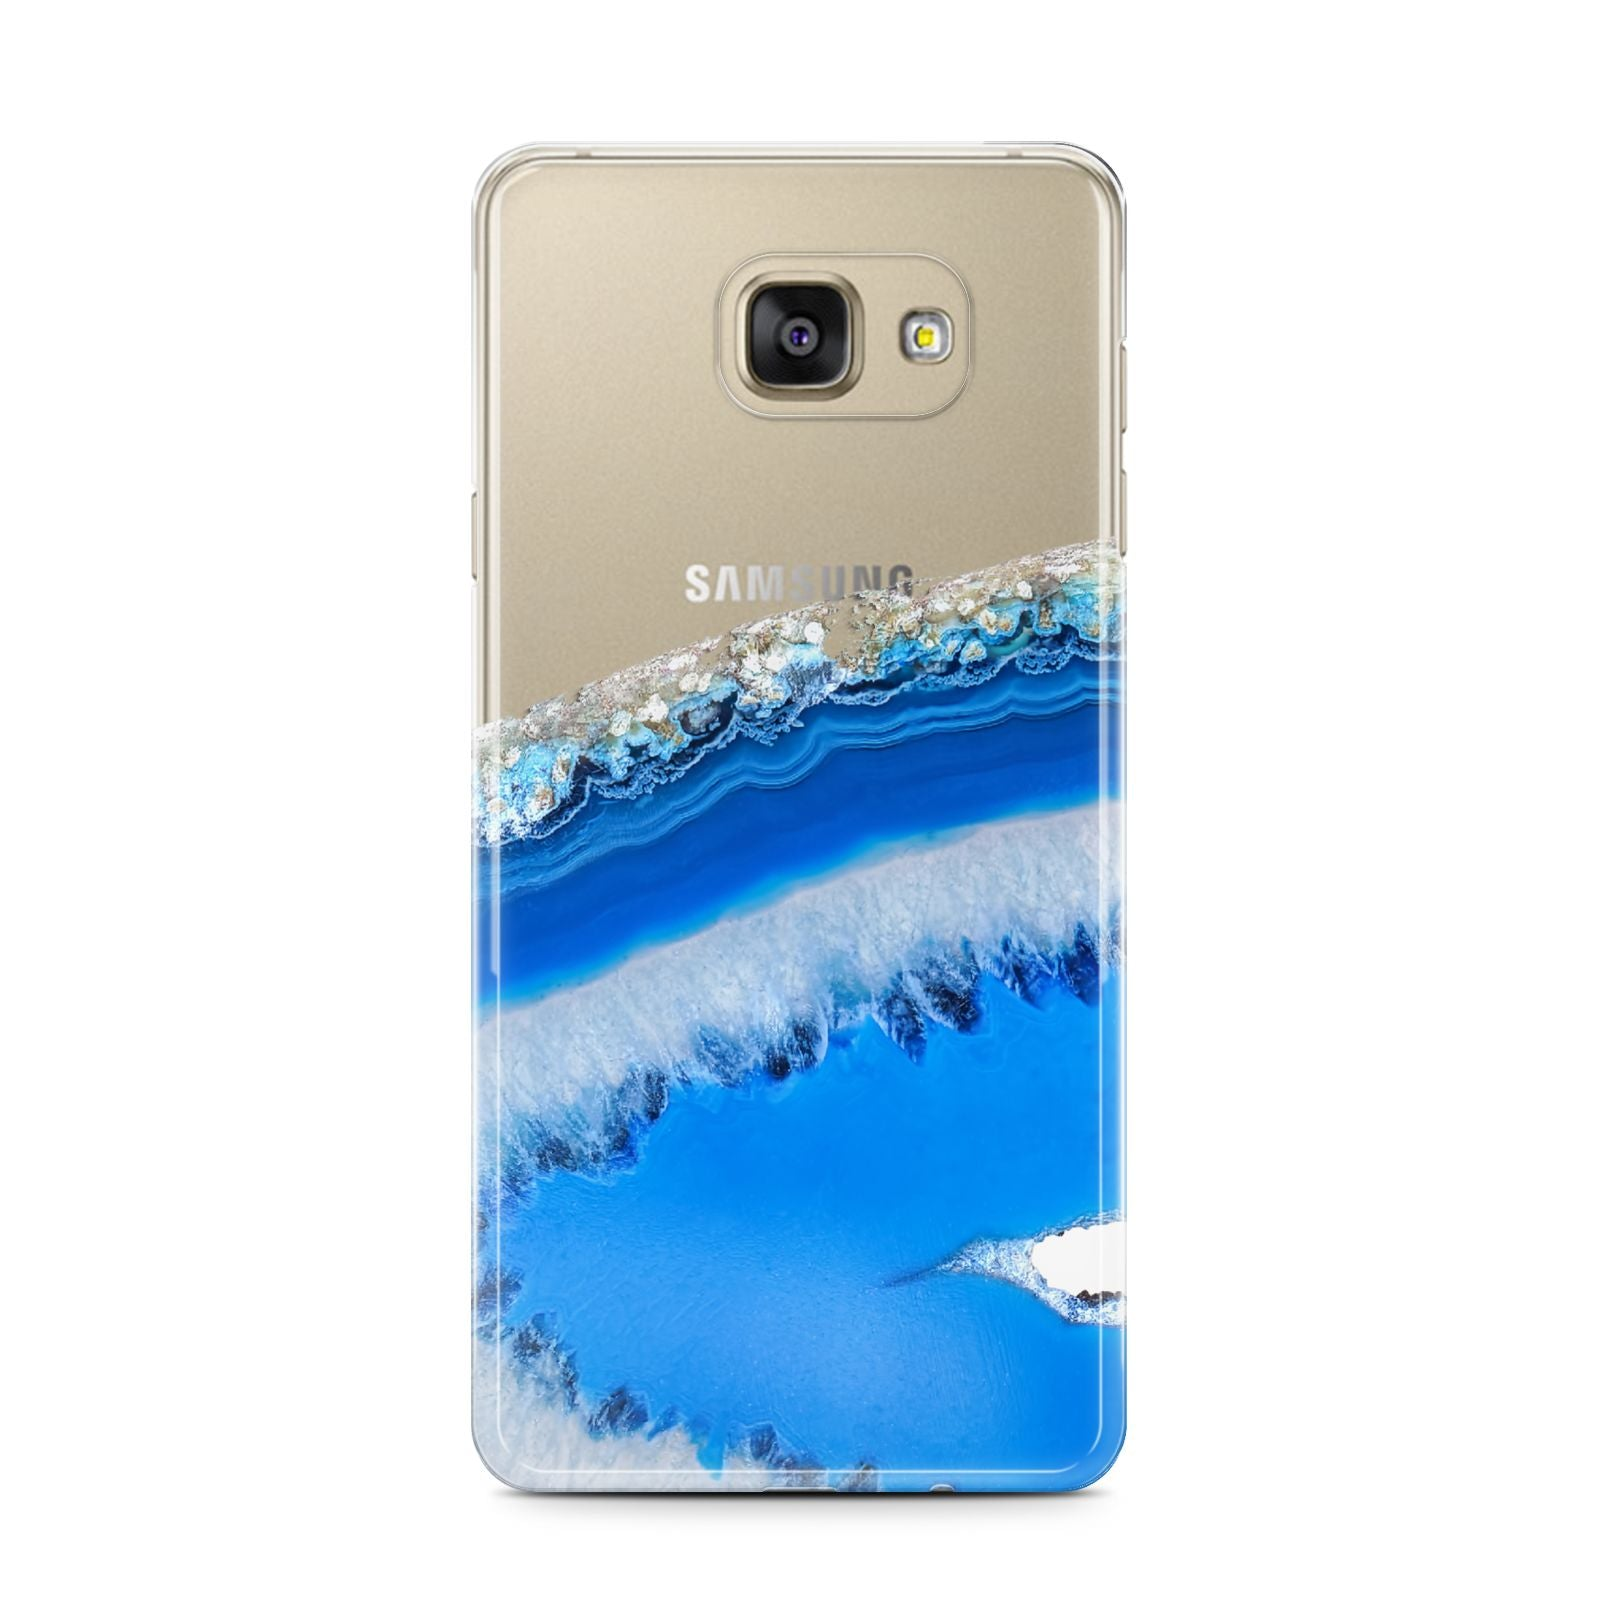 Agate Blue Samsung Galaxy A7 2016 Case on gold phone